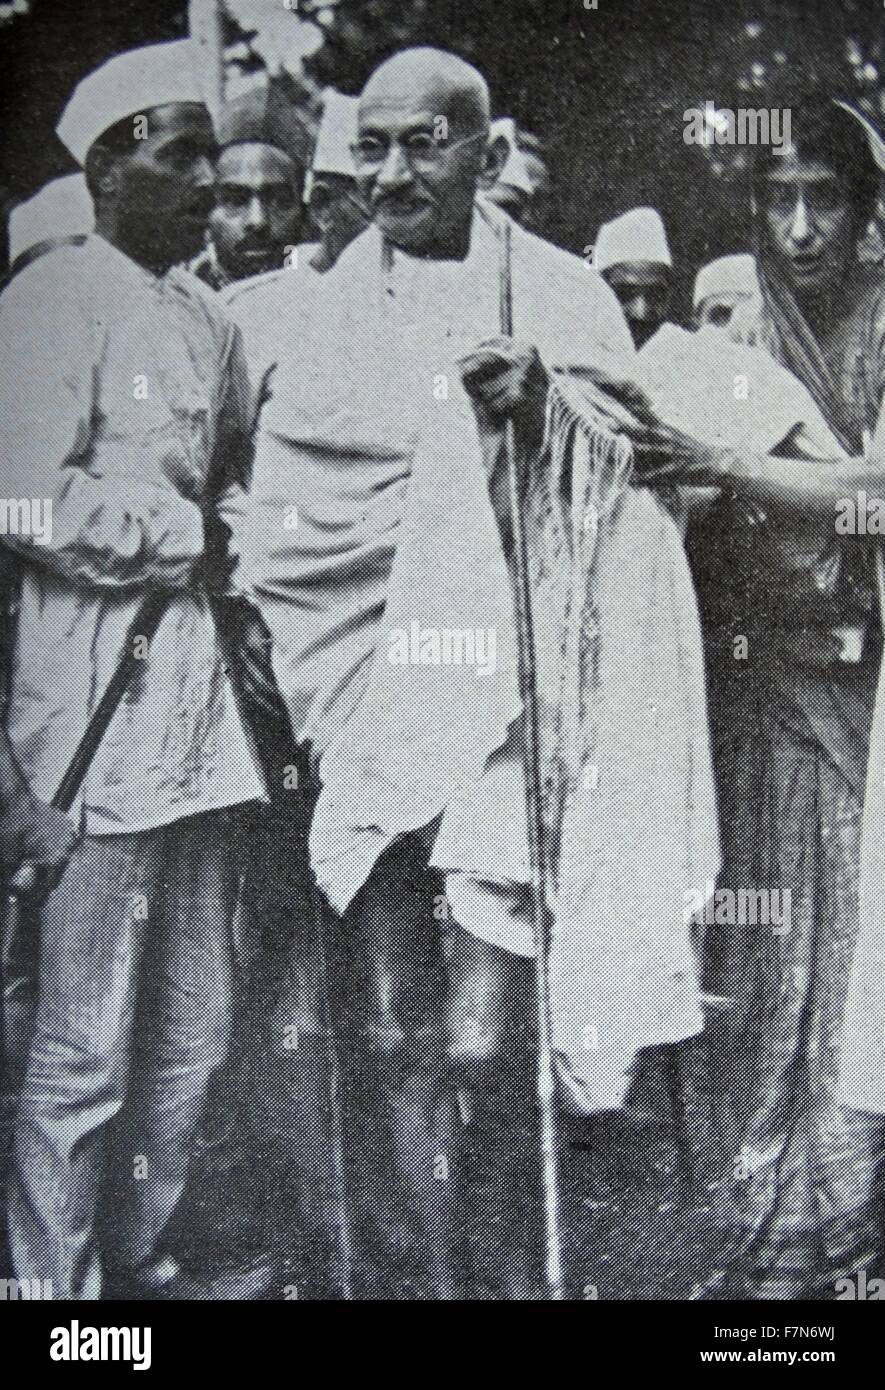 Mahatma Gandhi, Indian mystic and political leader, with some of his followers. 1930 - Stock Image